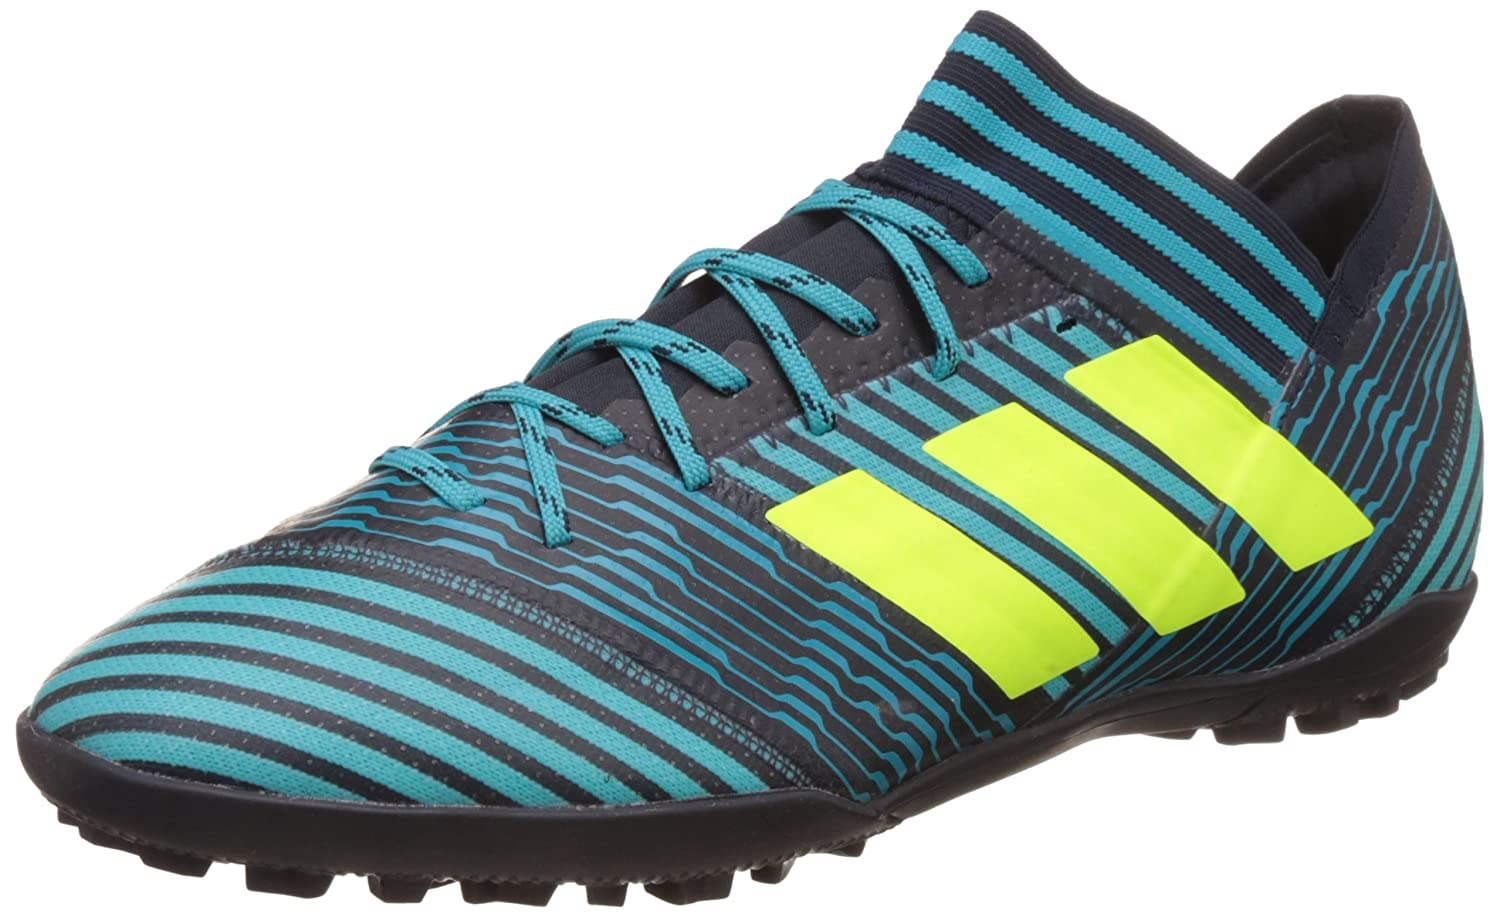 96dd9a50d2c4 Adidas Men's Nemeziz Tango 17.3 Tf Legink/Syello/Eneblu Football Boots - 11  UK/India (46 EU) (BY2463): Buy Online at Low Prices in India - Amazon.in